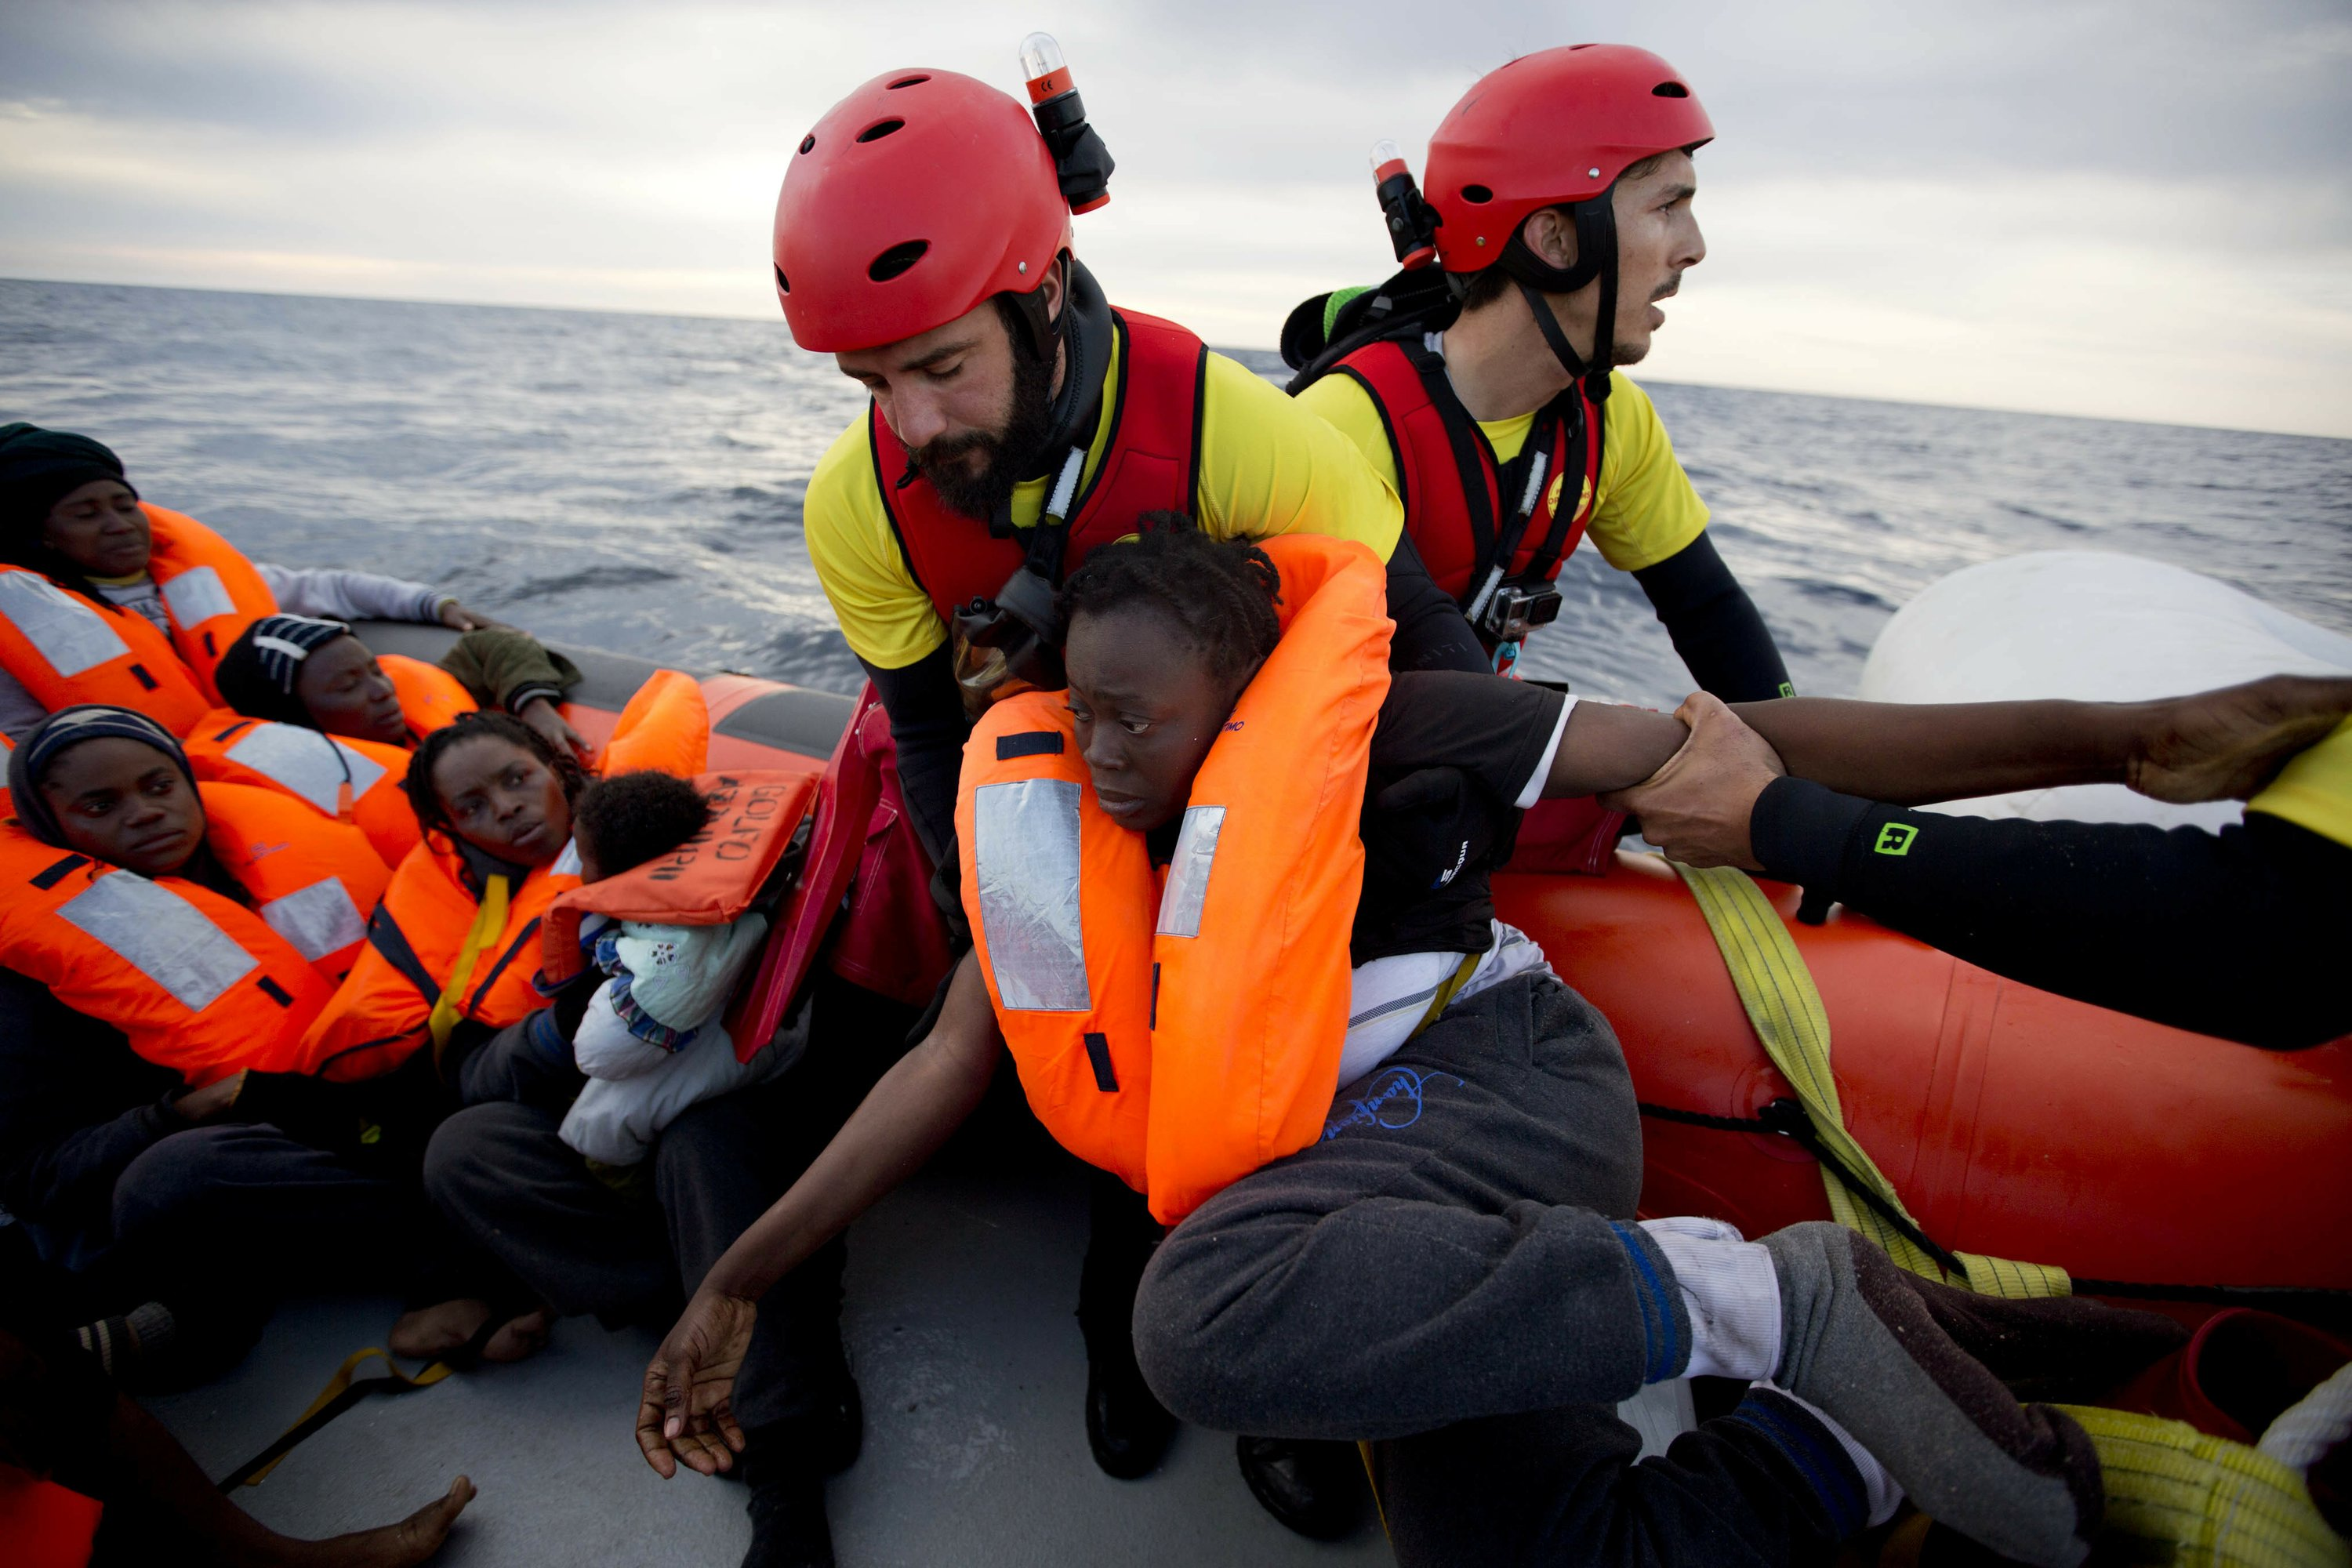 Europe plans to cut migrant influx by working with Libya